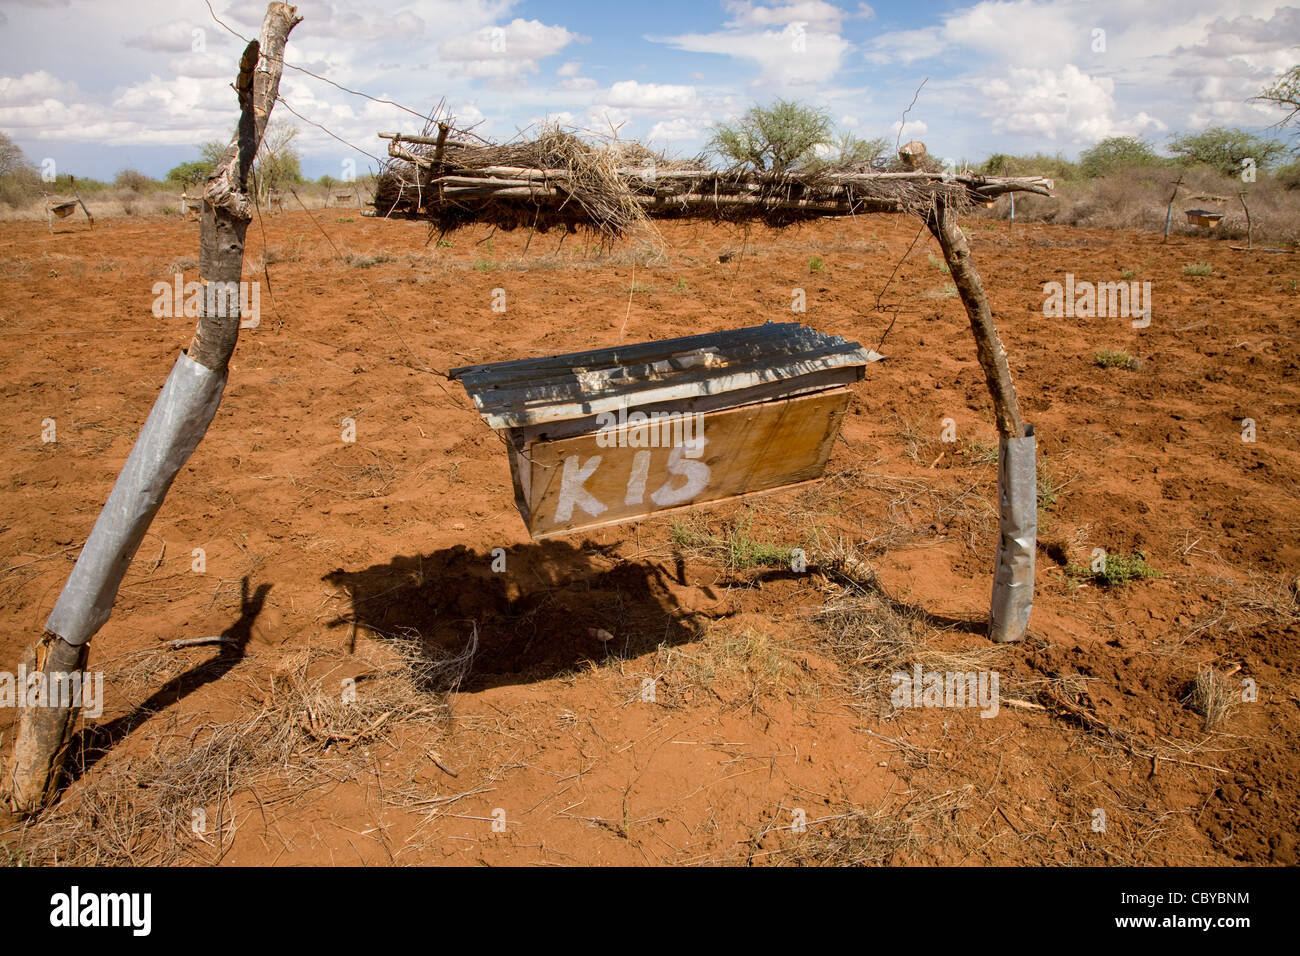 Elephant deterring beehive fence in Sagalla near Voi in southern Kenya - Stock Image